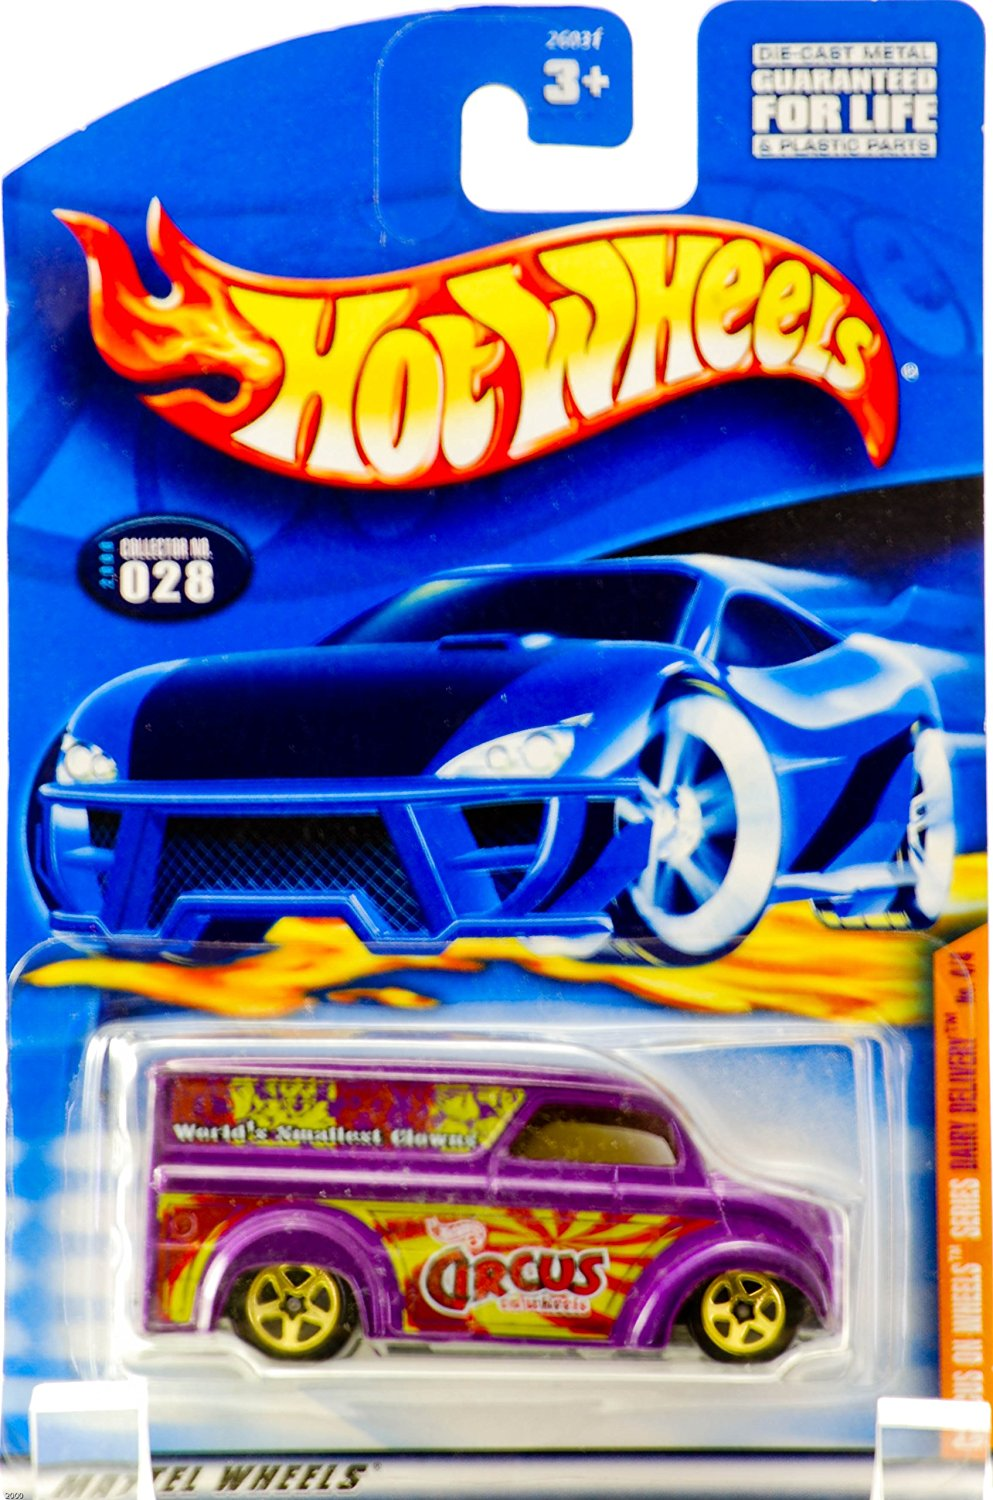 2000 - Mattel - Hot Wheels - Circus On Wheels - Dairy Delivery (World's Smallest Clowns) - Purple / Custom Gold Wheels - #4 of 4 - Collectors #028 - Yellow Tinted Windows - New - Out of Production - Limited Edition - Collectible